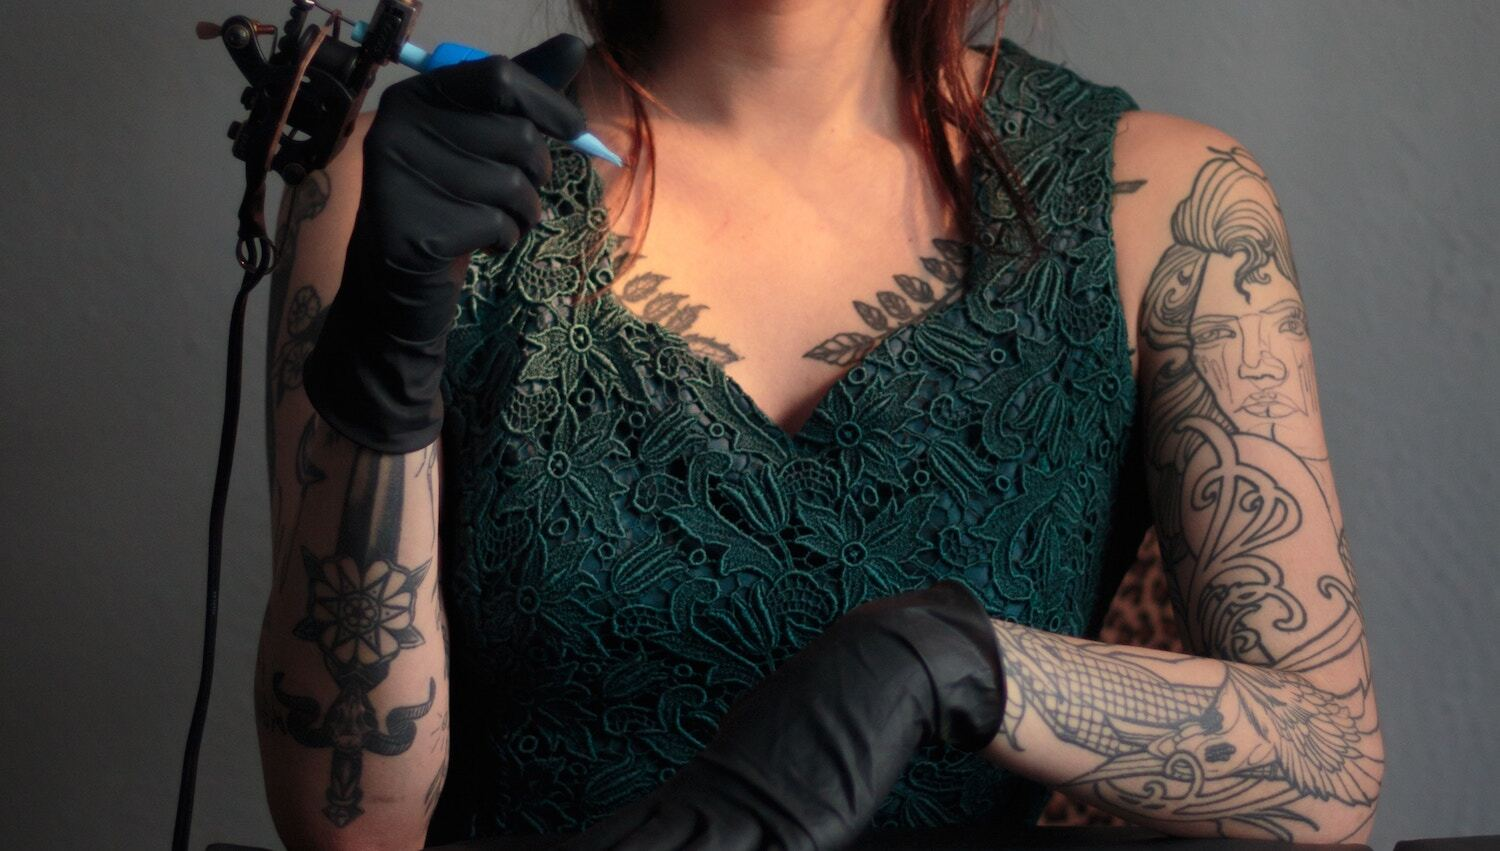 11 Best Tattoo Artists In Singapore To Get First Rate Ink